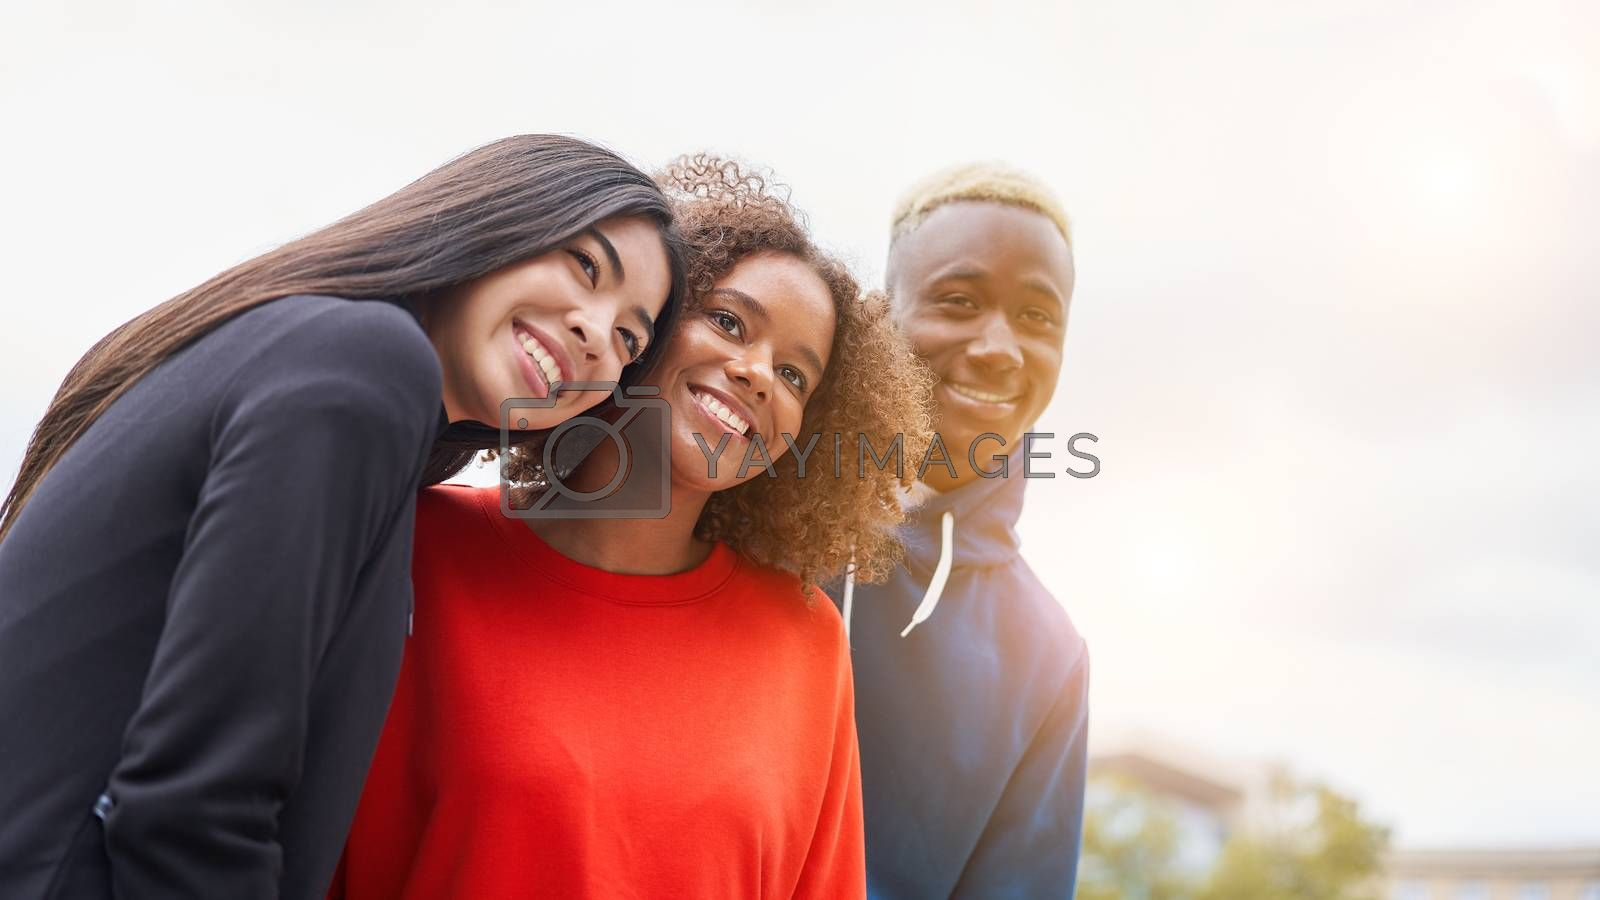 Multi ethnic friends outdoor on photo shooting looking at camera. Diverse group people Afro american asian spending time together Multiracial male female student meeting outdoors for photo